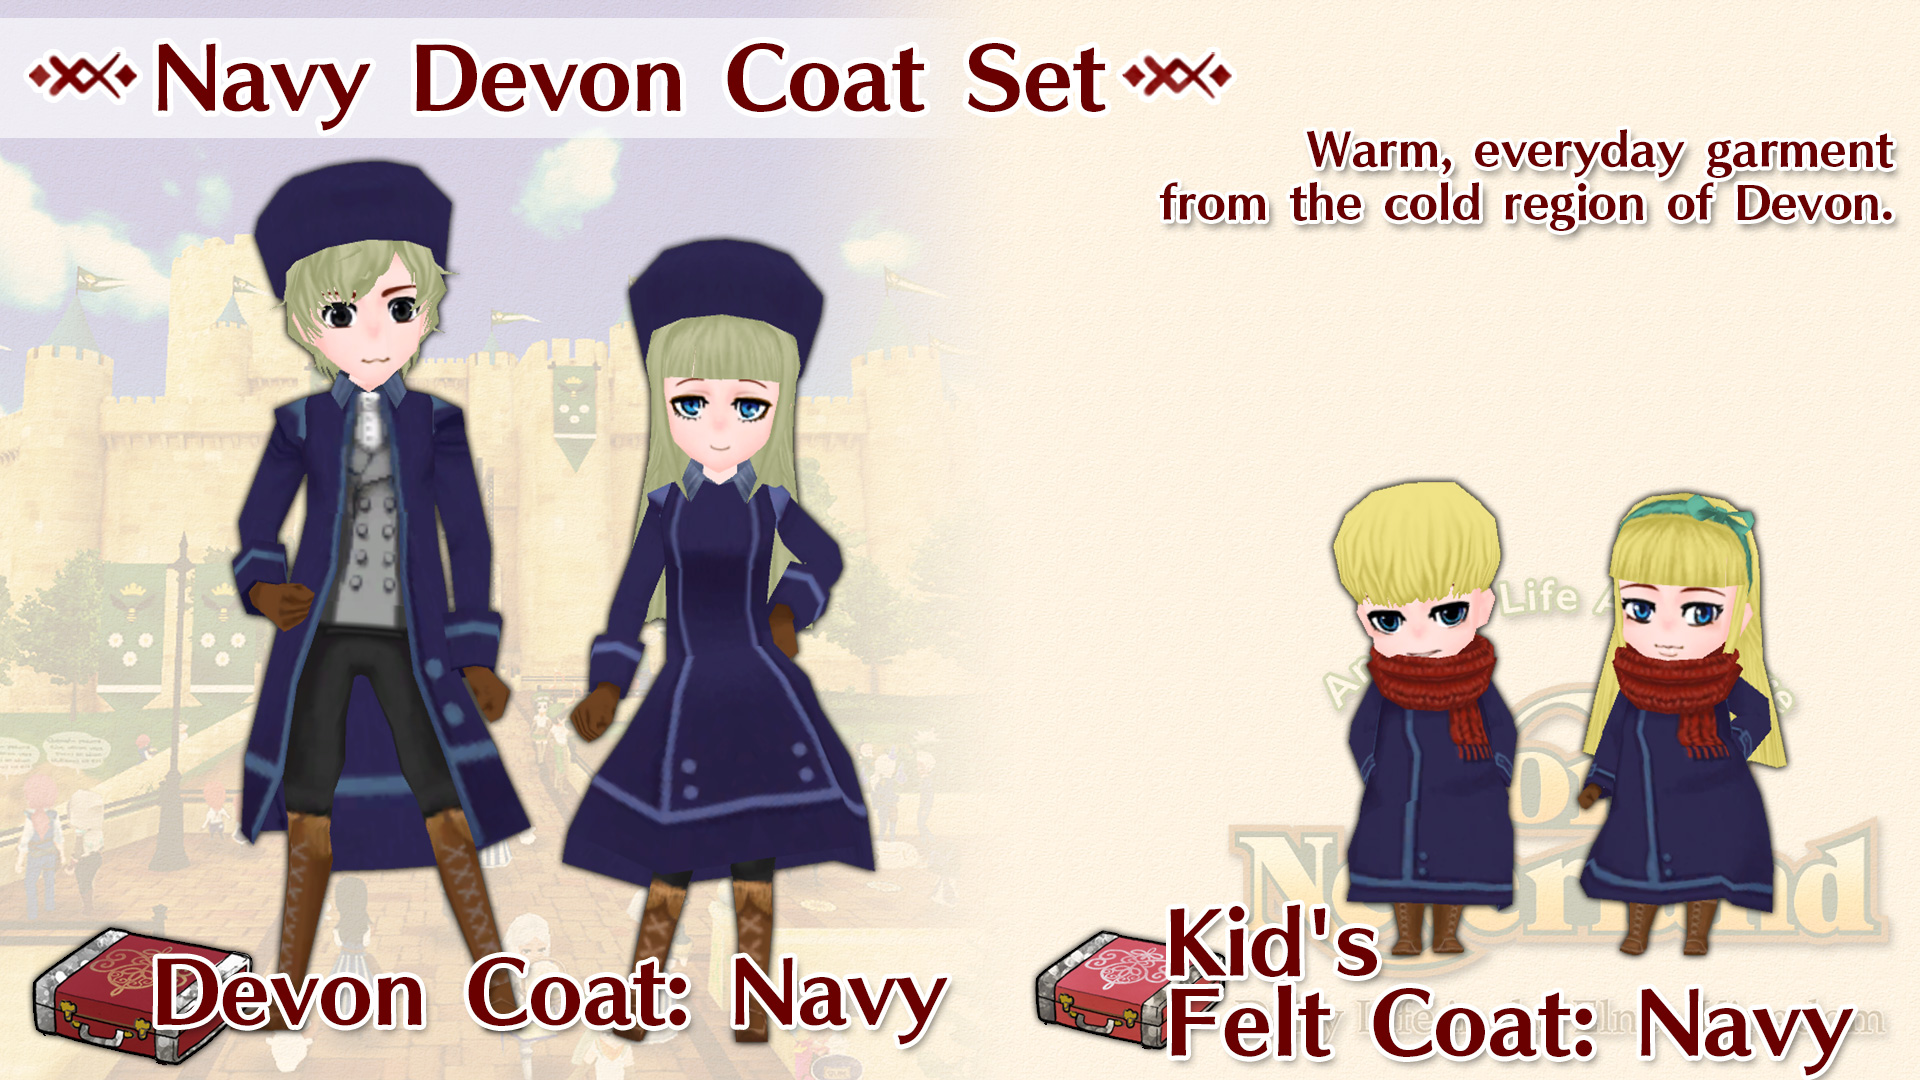 Navy Devon Coat Set